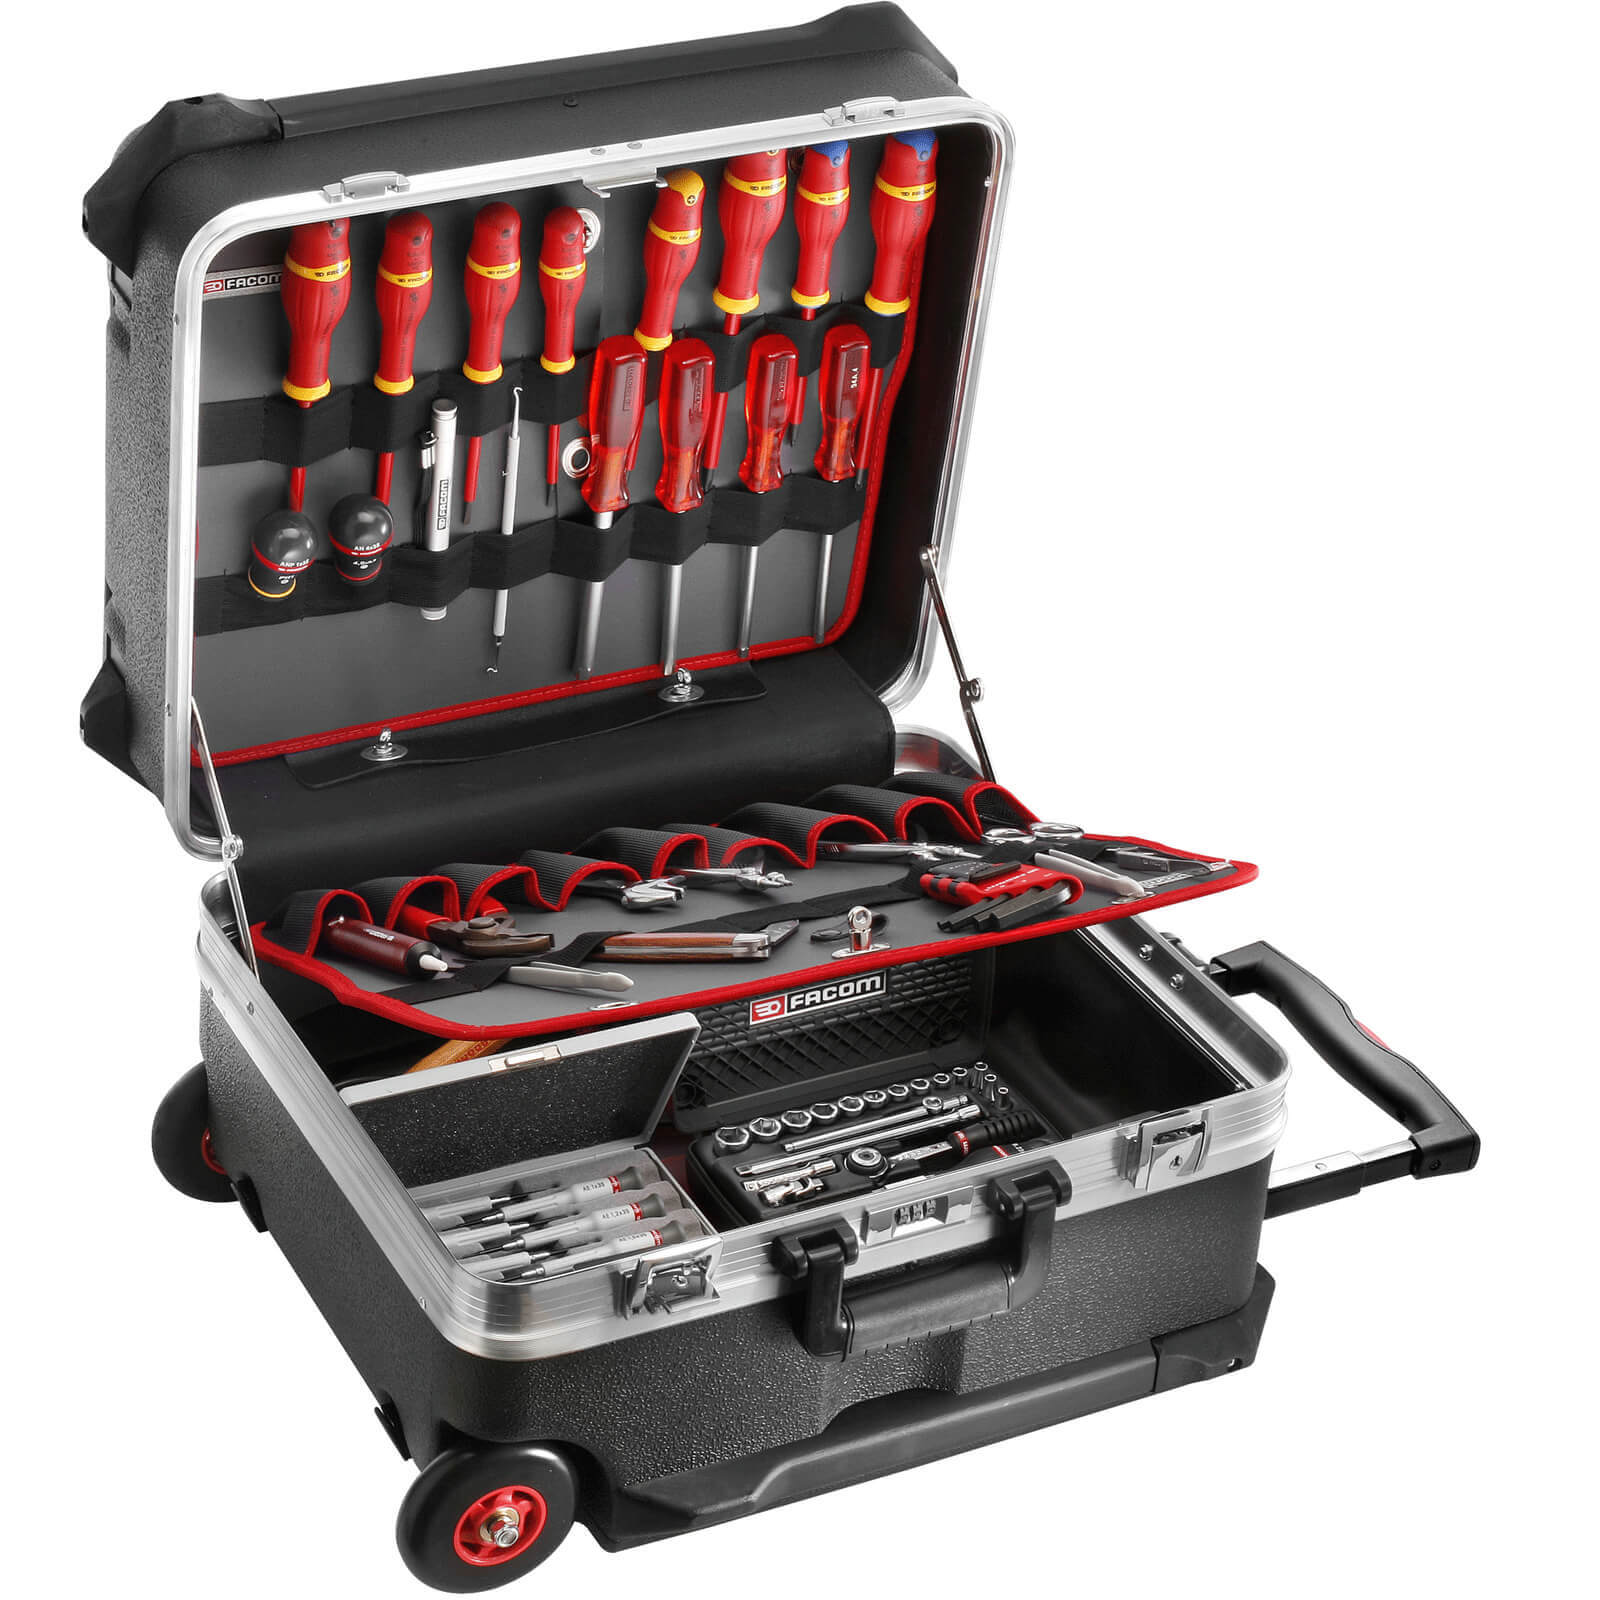 Image of Facom Trolley Tool Case + 122 Piece Service Tool Set